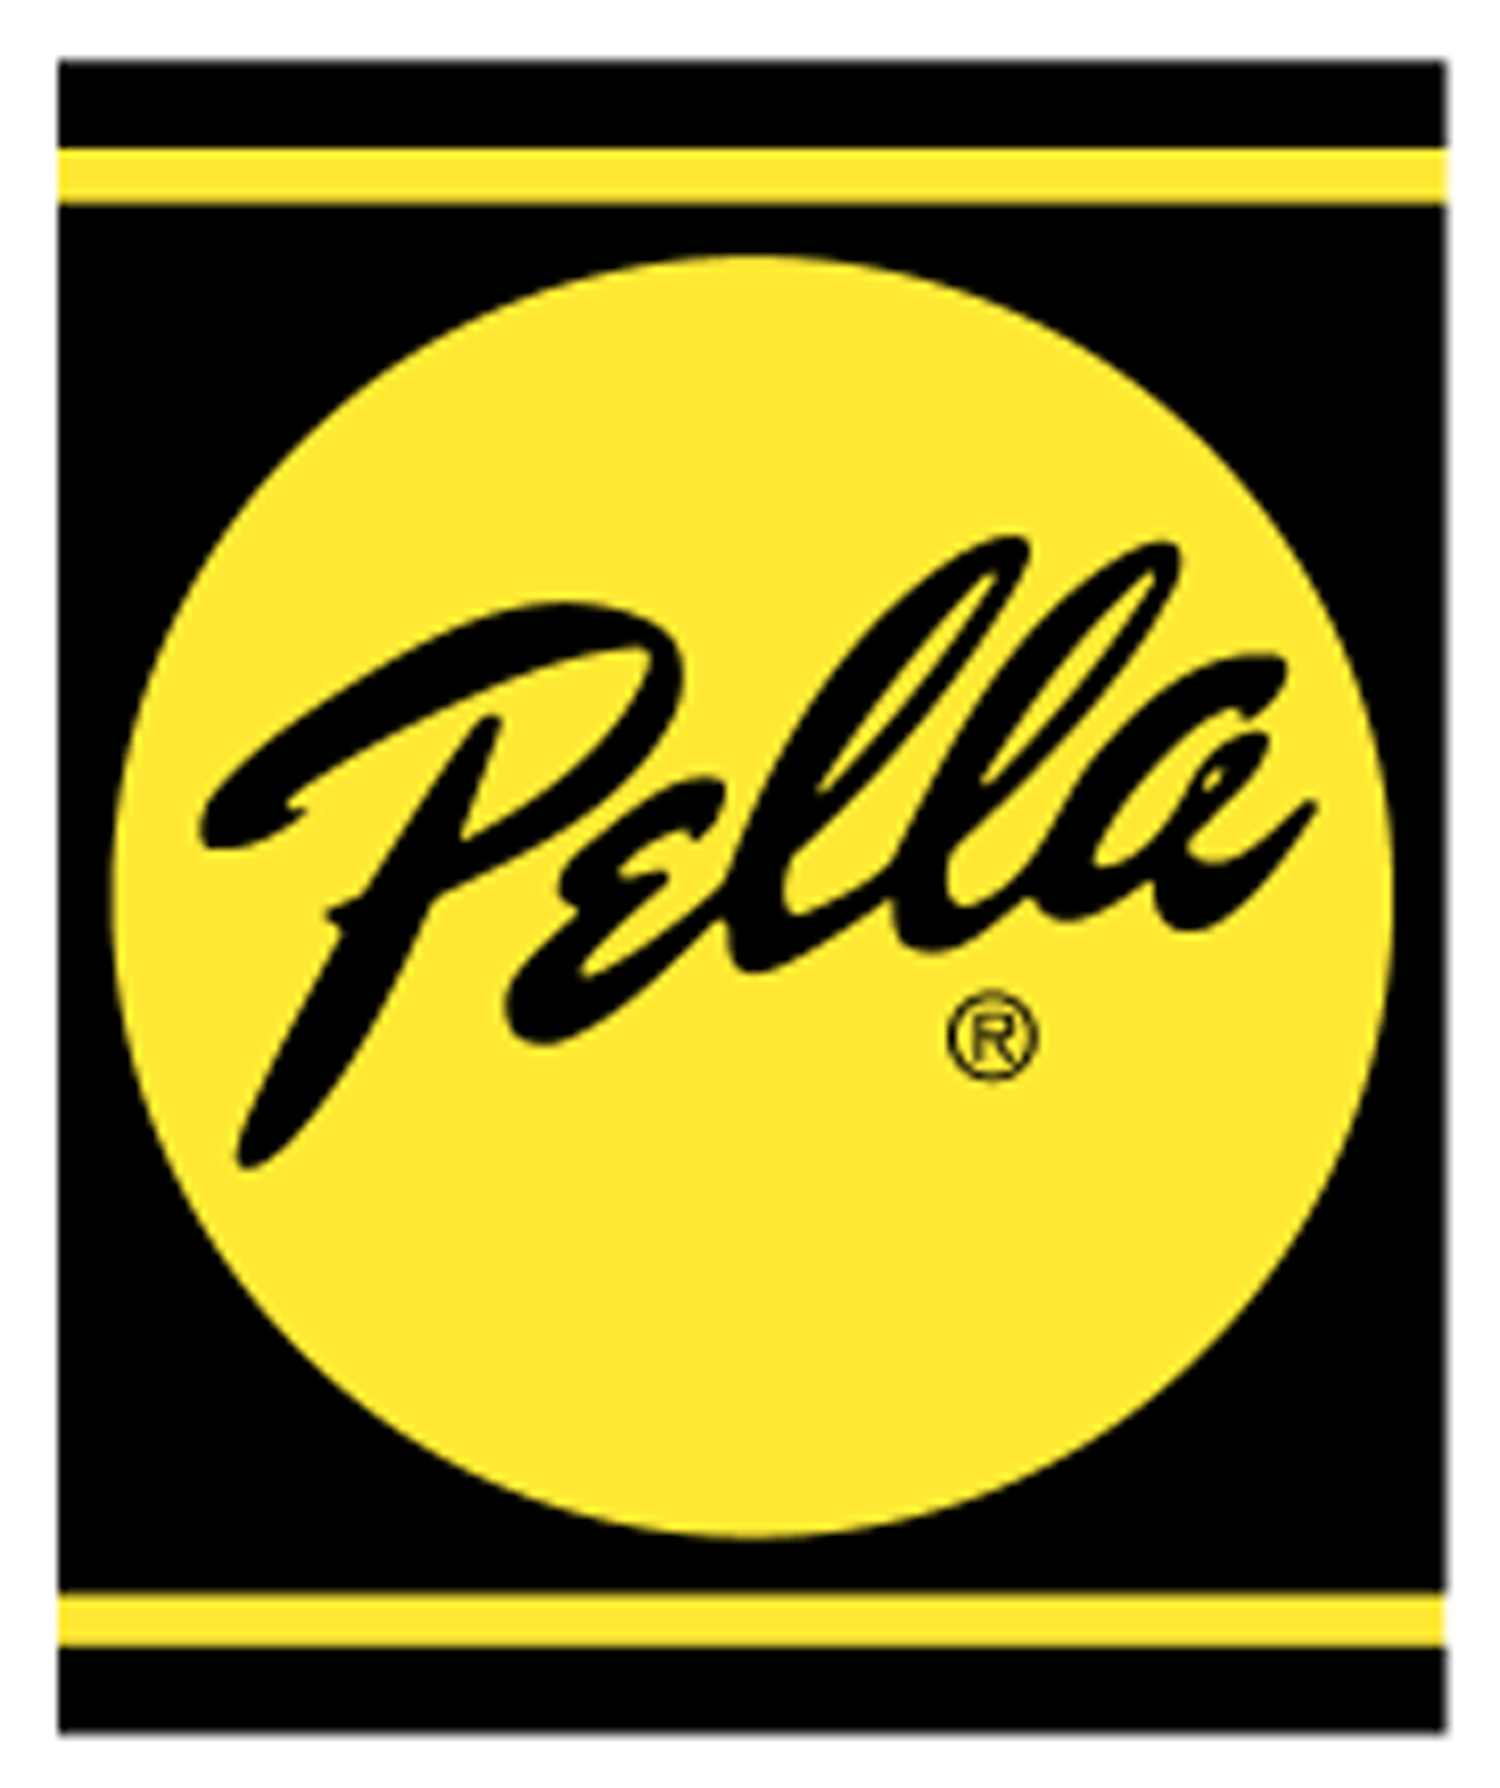 Pella® Corporation Acquires Reilly Windows U0026 Doors Of Calverton, New York |  Business Wire